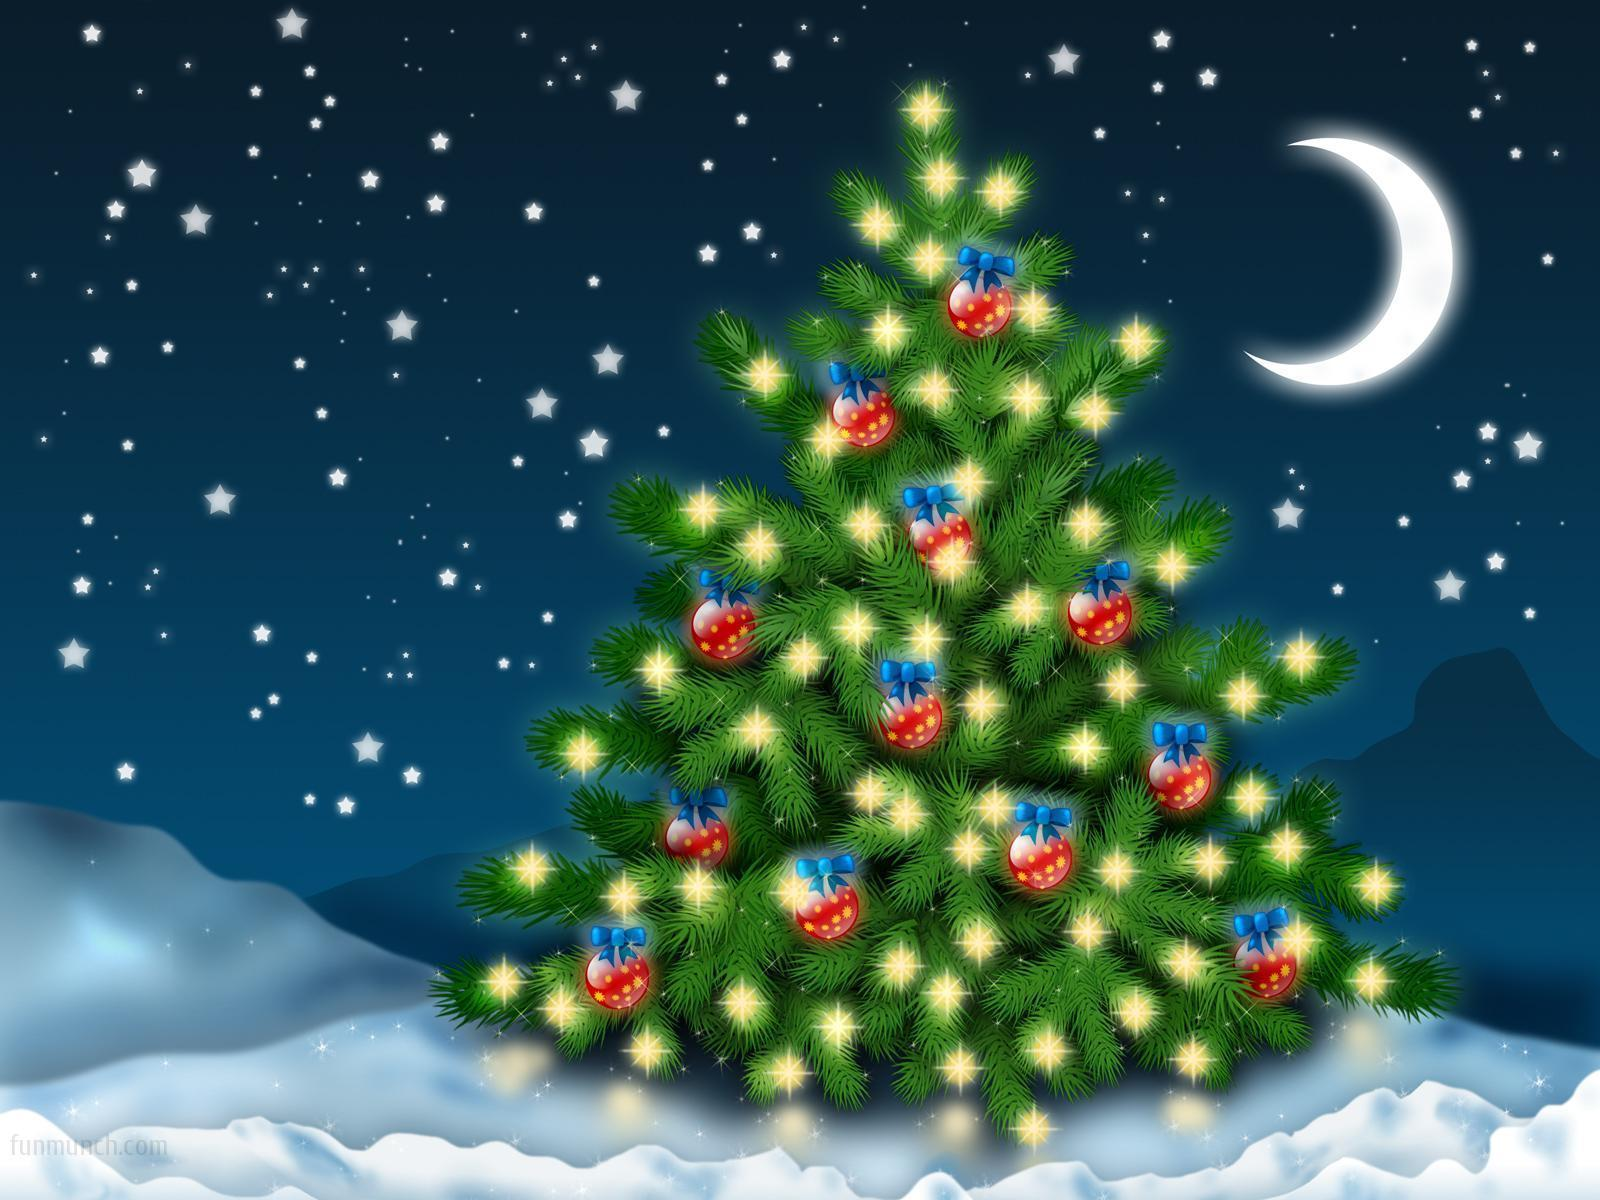 christmas wallpaper with bright - photo #5